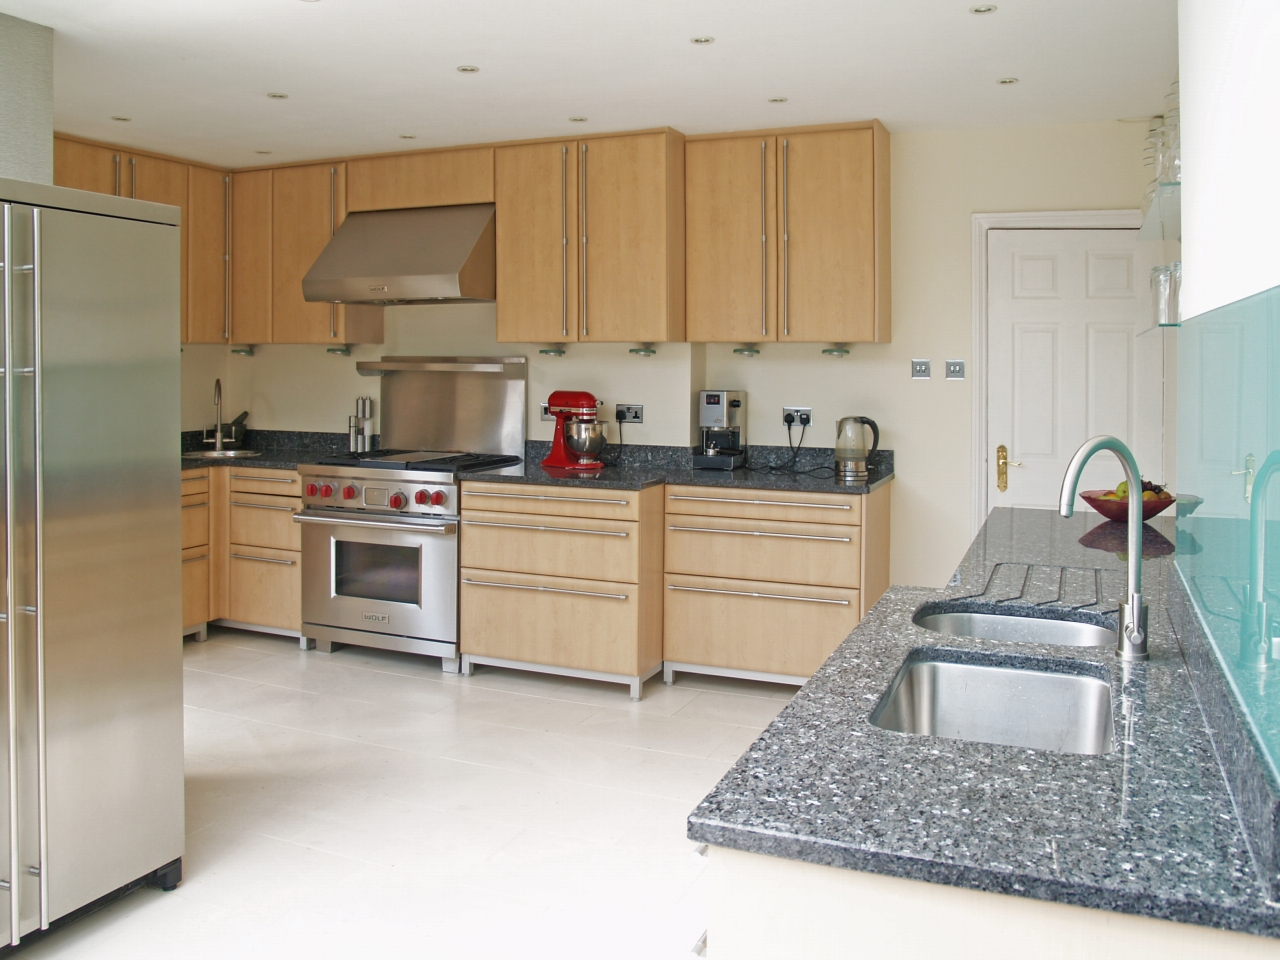 6 bedroom semi detached house SSTC in Solihull - photograph 6.